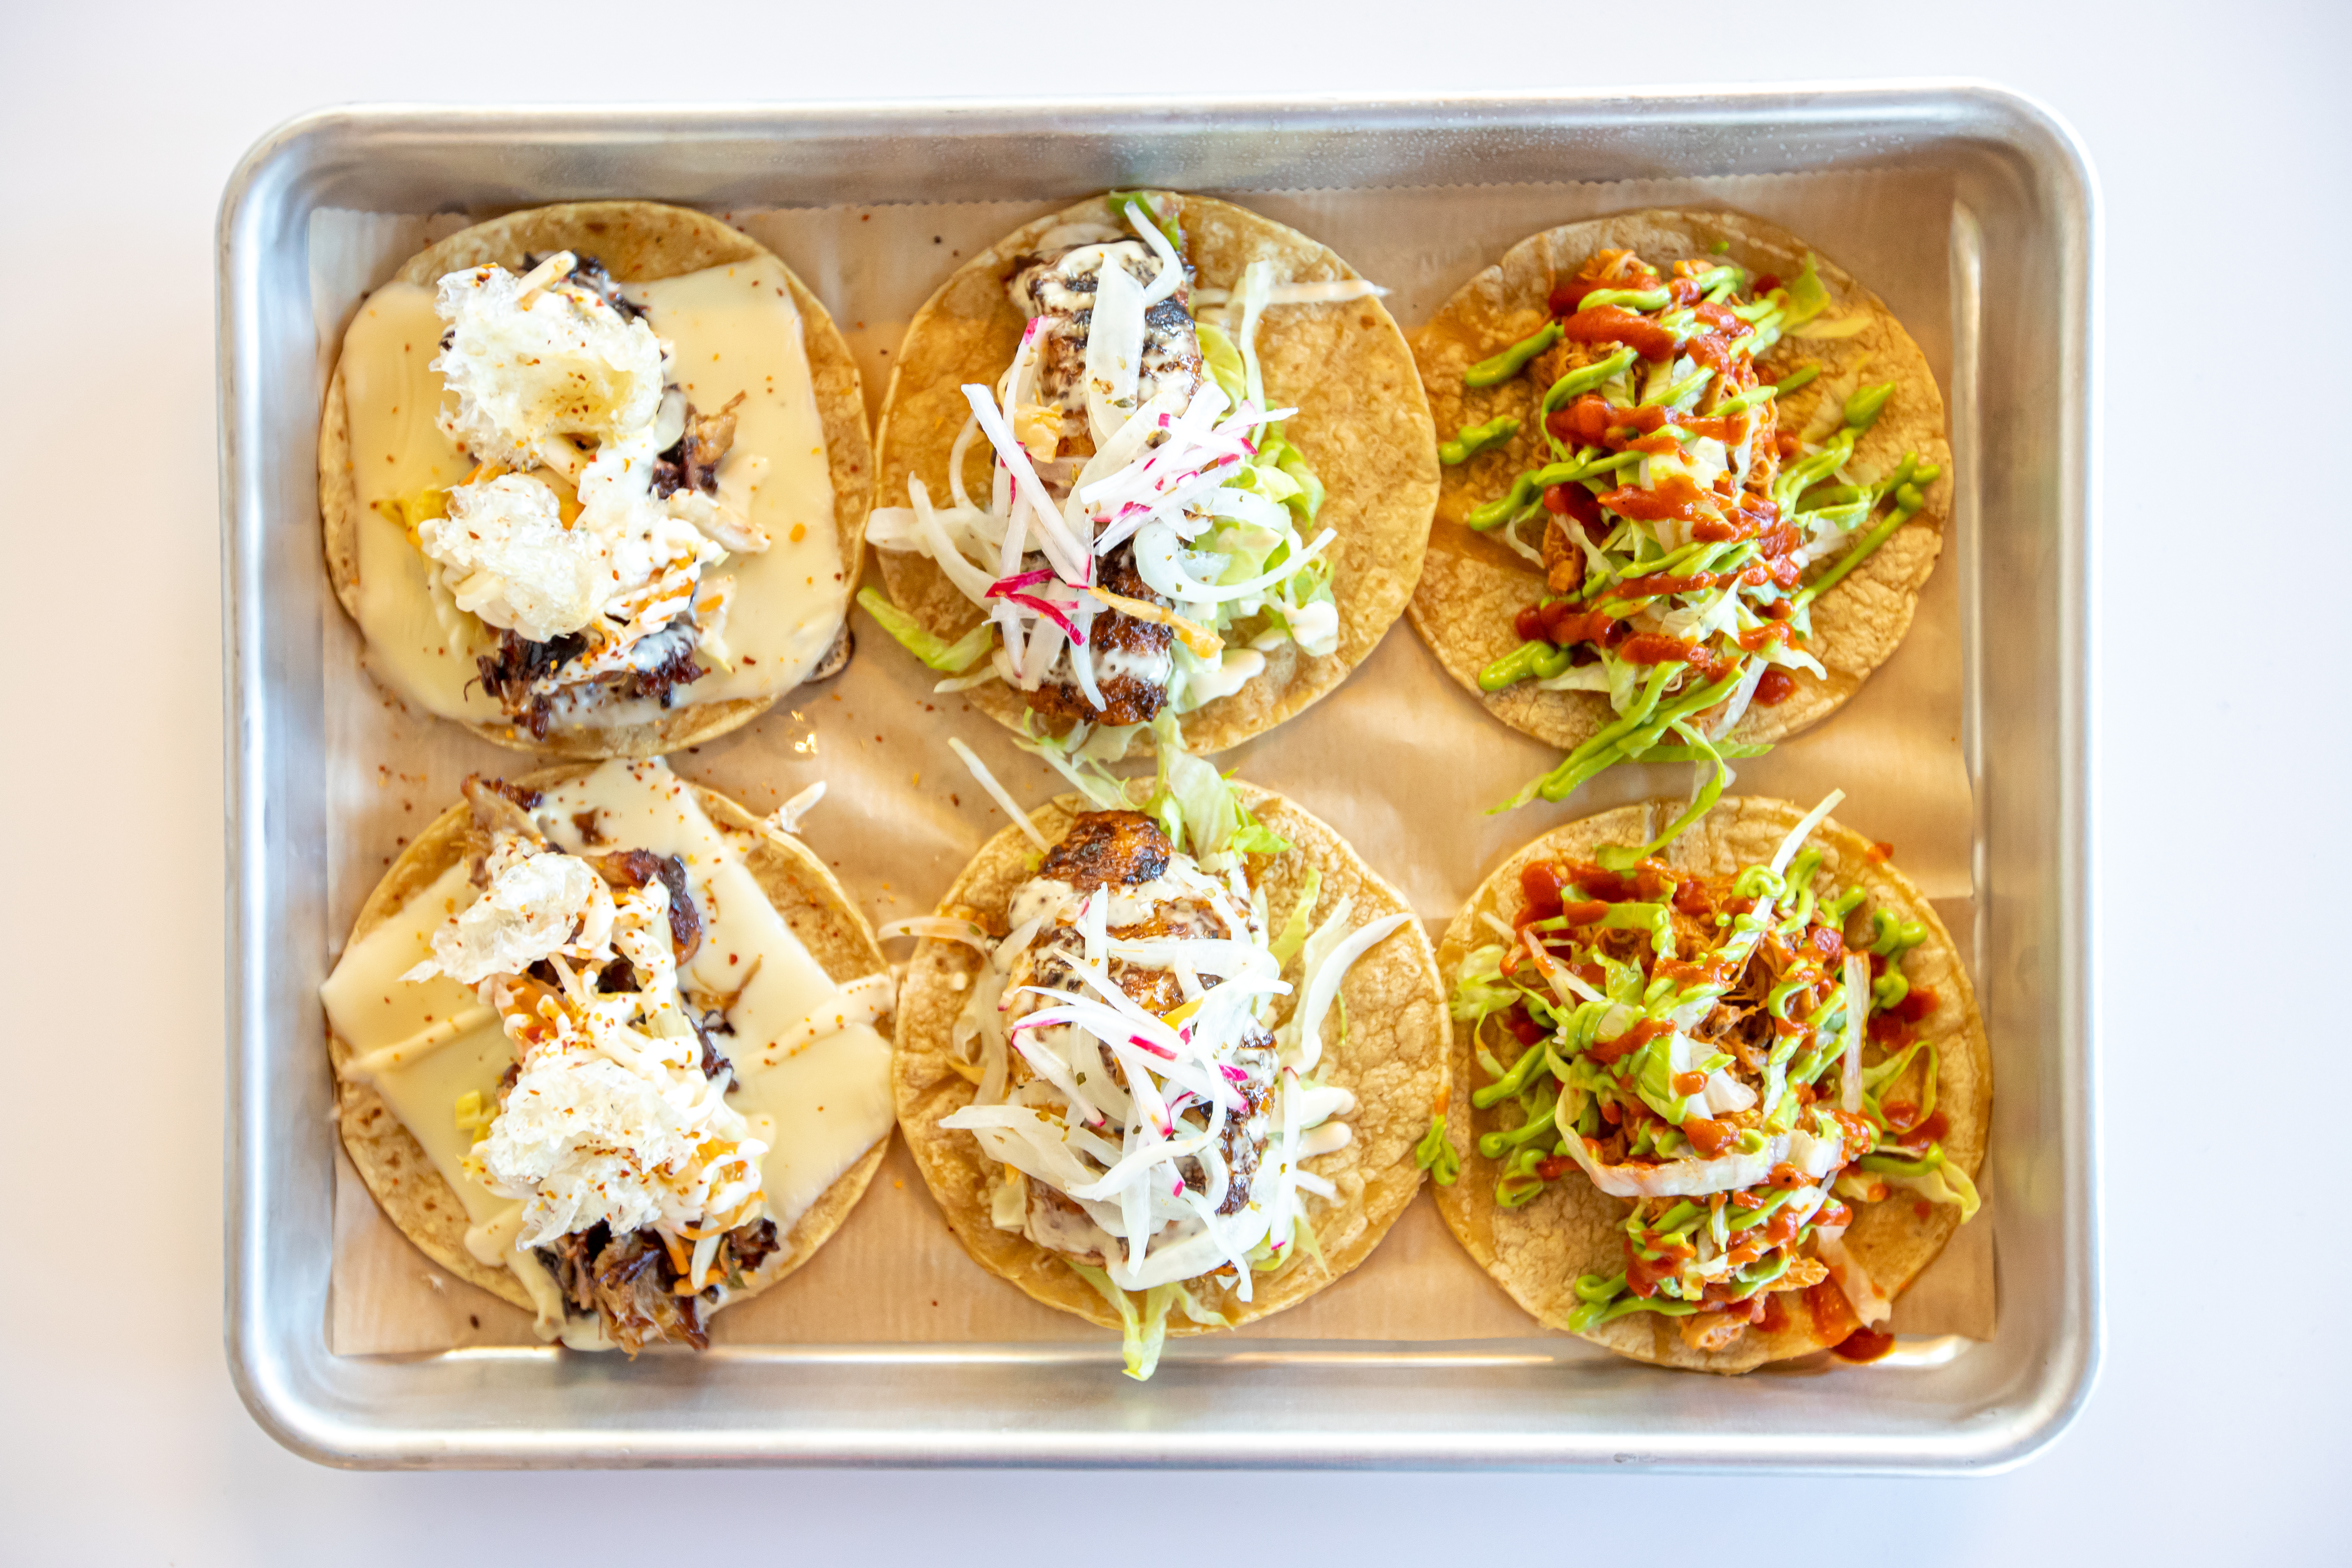 Tacos stuffed with orange soda braised carnitas, three chile-spiced catfish, and mojo braised chicken from Hi/Fi Taco